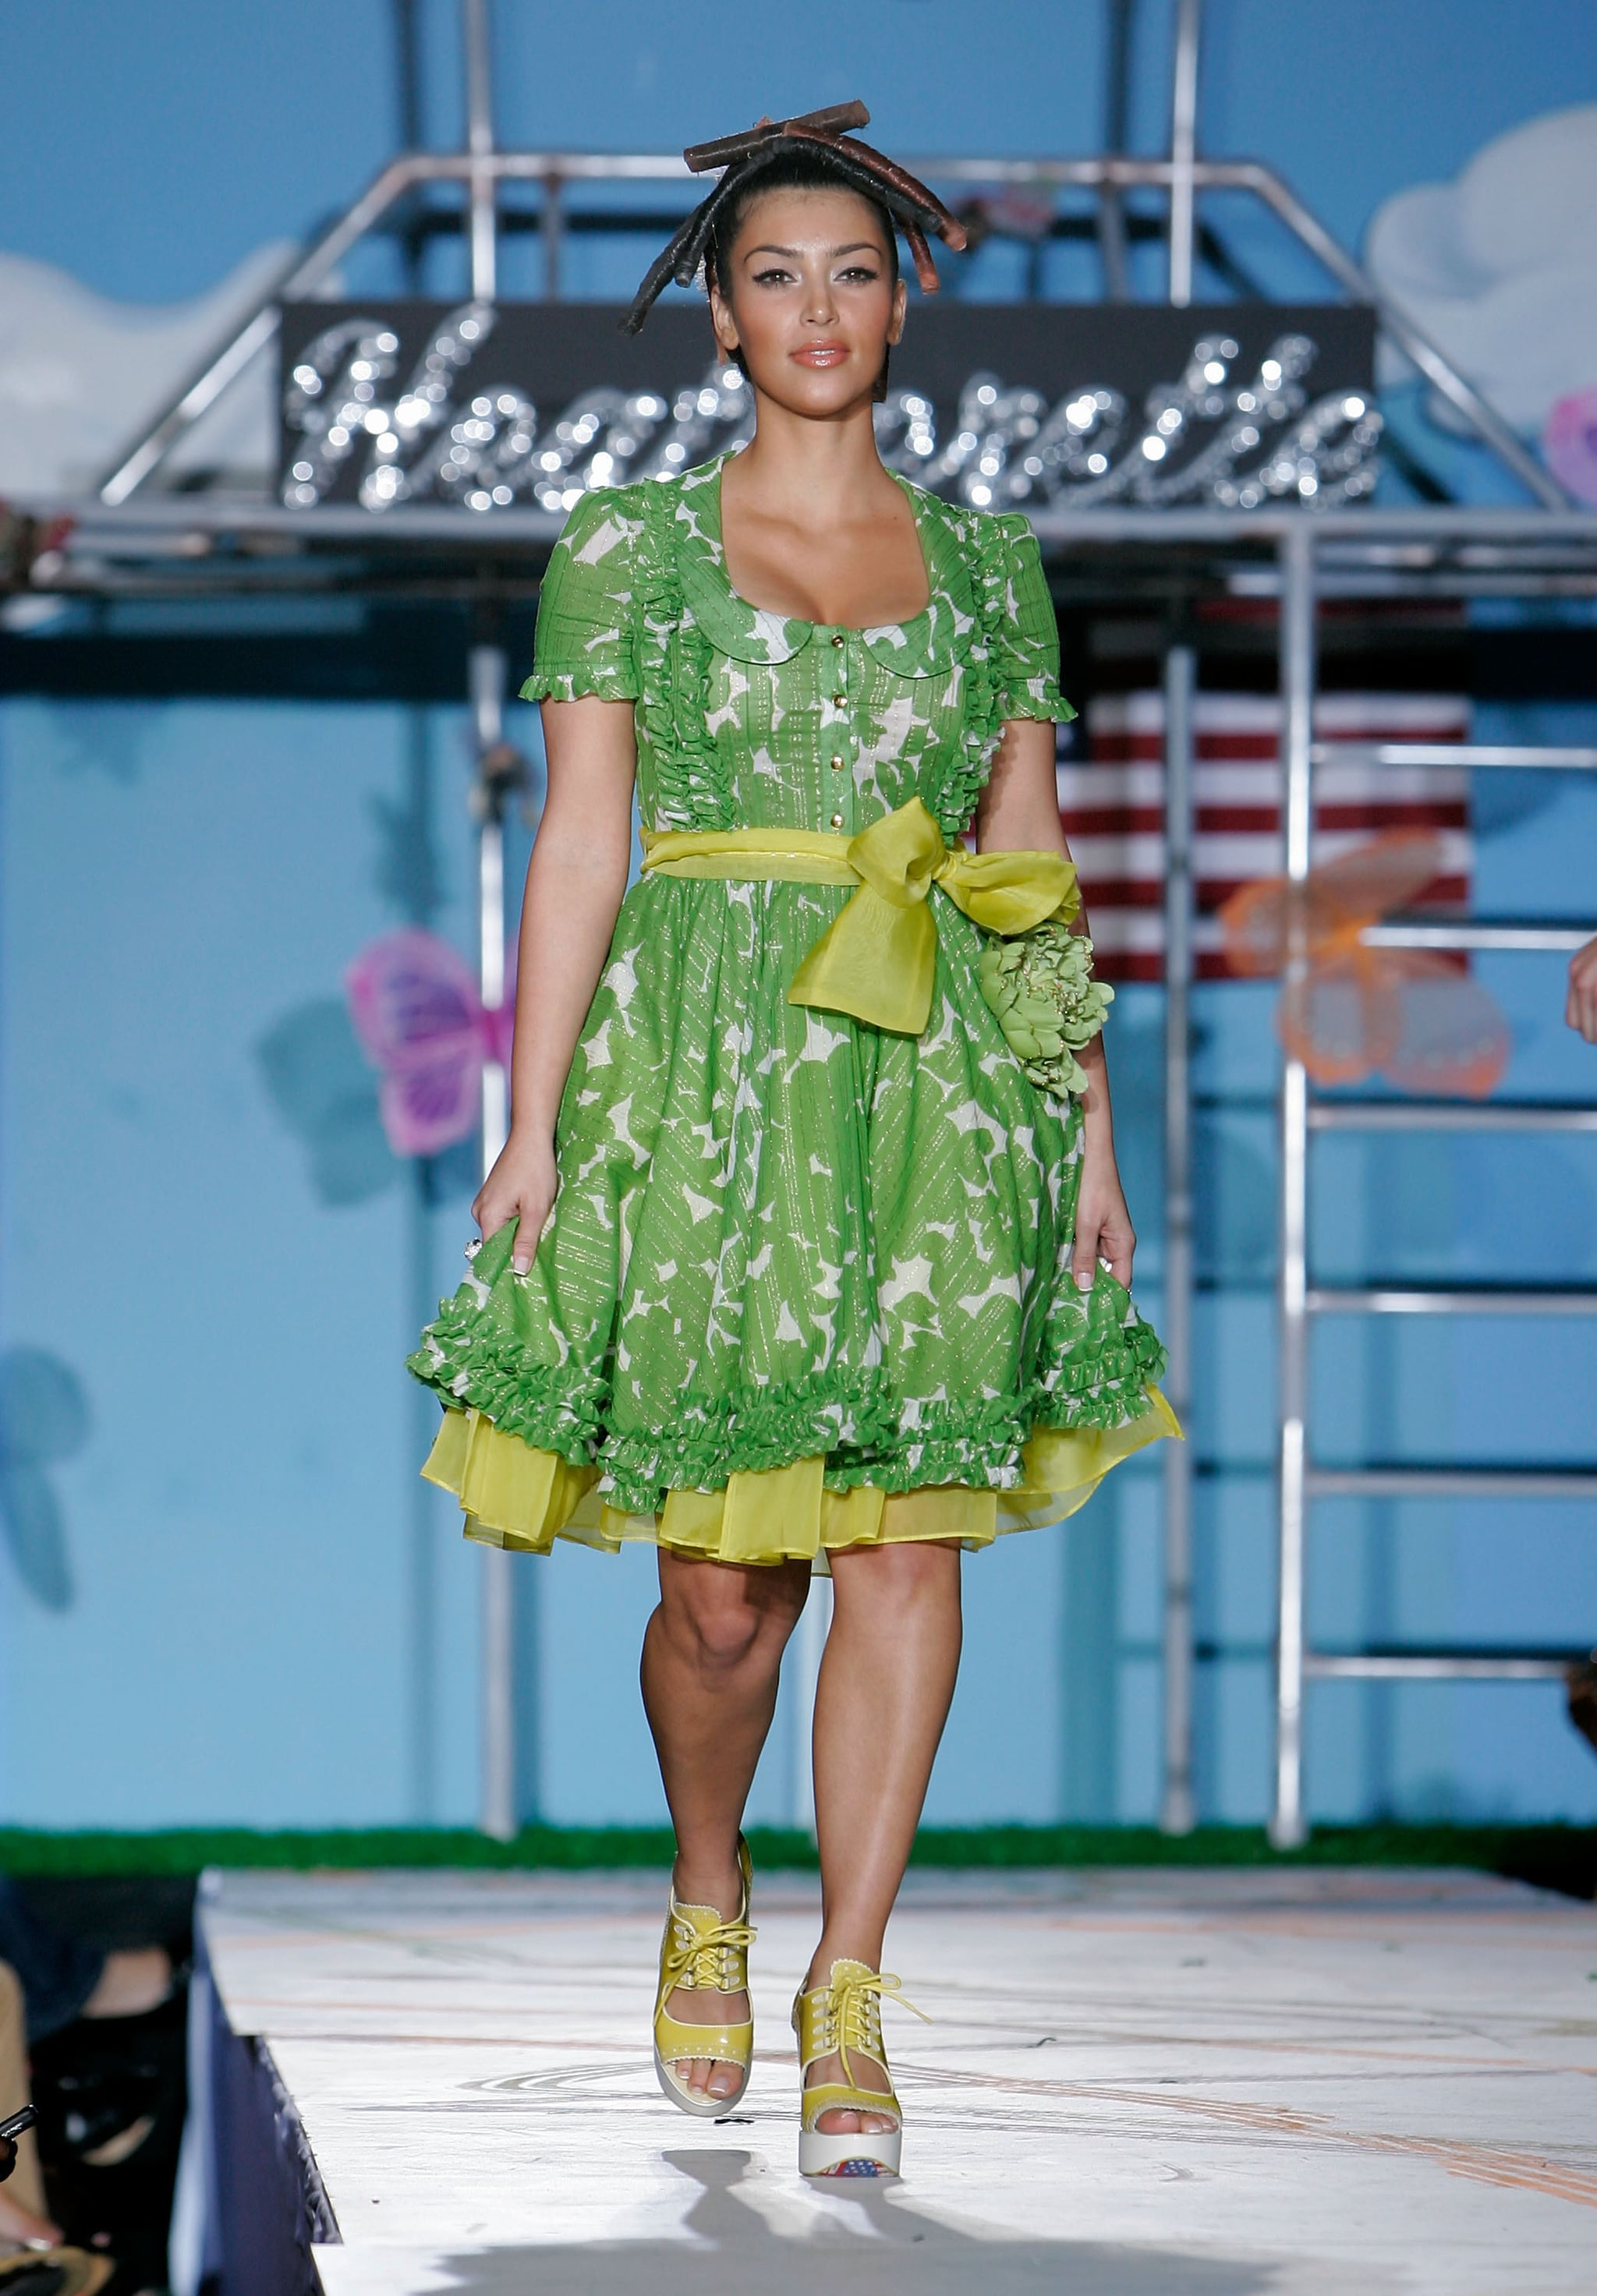 Kim Kardashian walked the runway for Heatherette's Spring 2008 show in February.